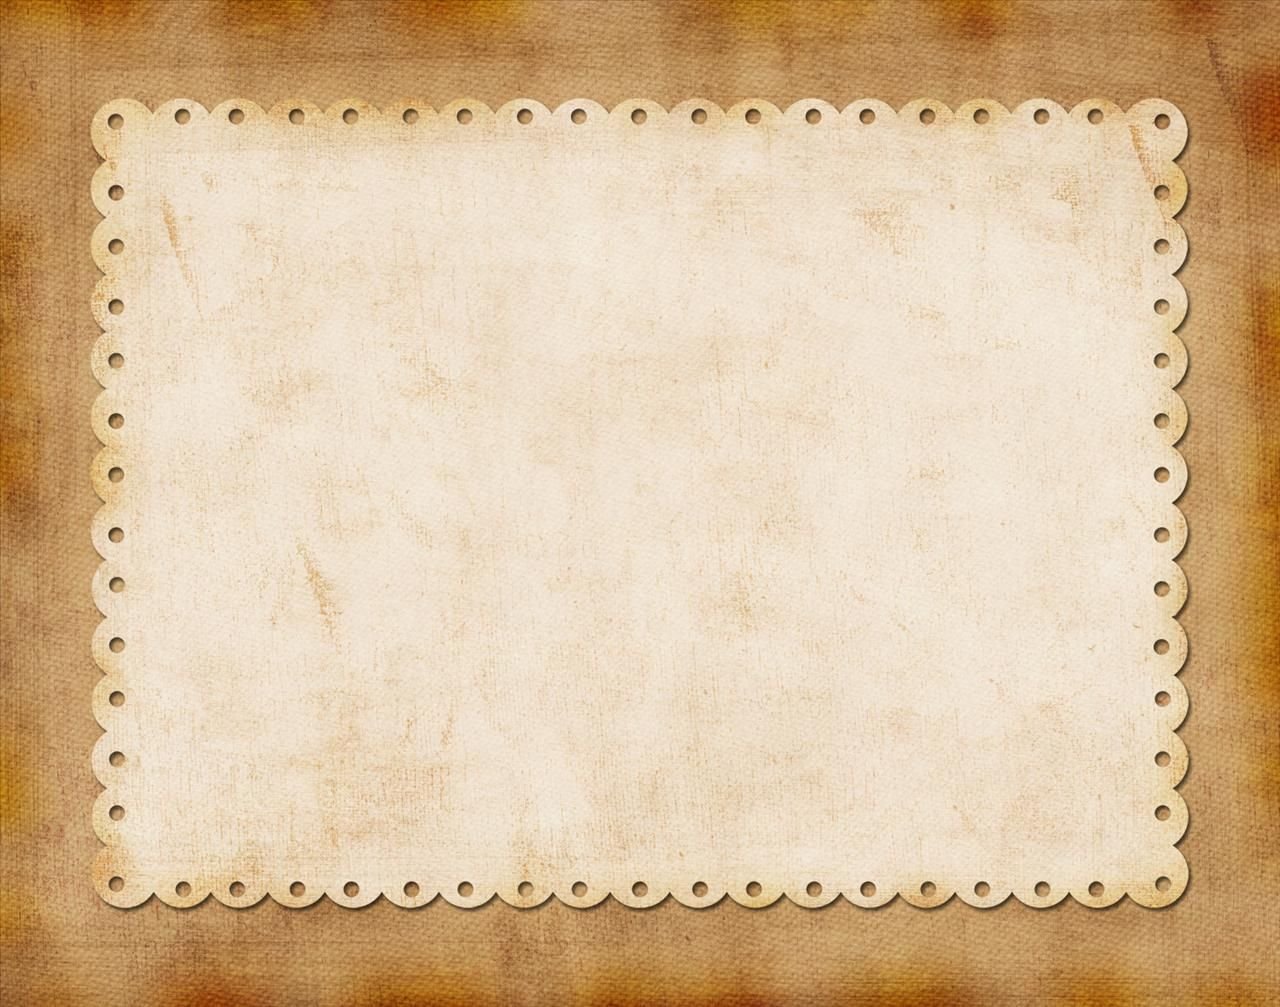 Ivory On Tan Border Backgrounds